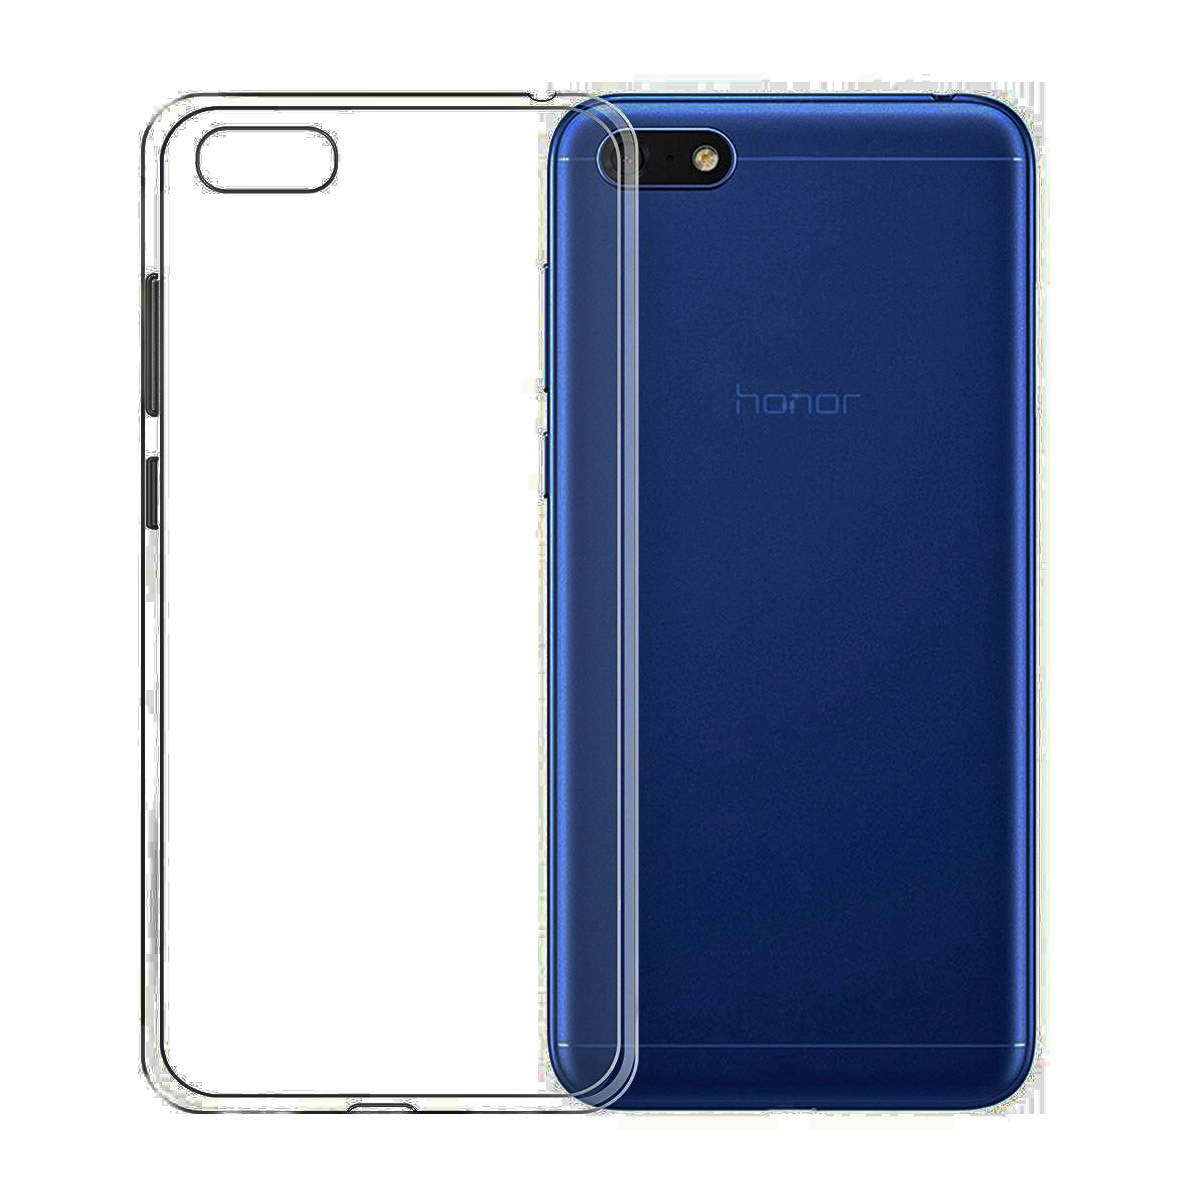 for <font><b>Huawei</b></font> <font><b>Honor</b></font> <font><b>7A</b></font> 8A Pro 8S 8C 8X Max 7C 7s Case Clear Transparent Soft Gel TPU Silicone Phone Cover AUM-AL00/AL20/<font><b>Dua</b></font>-<font><b>L22</b></font> image